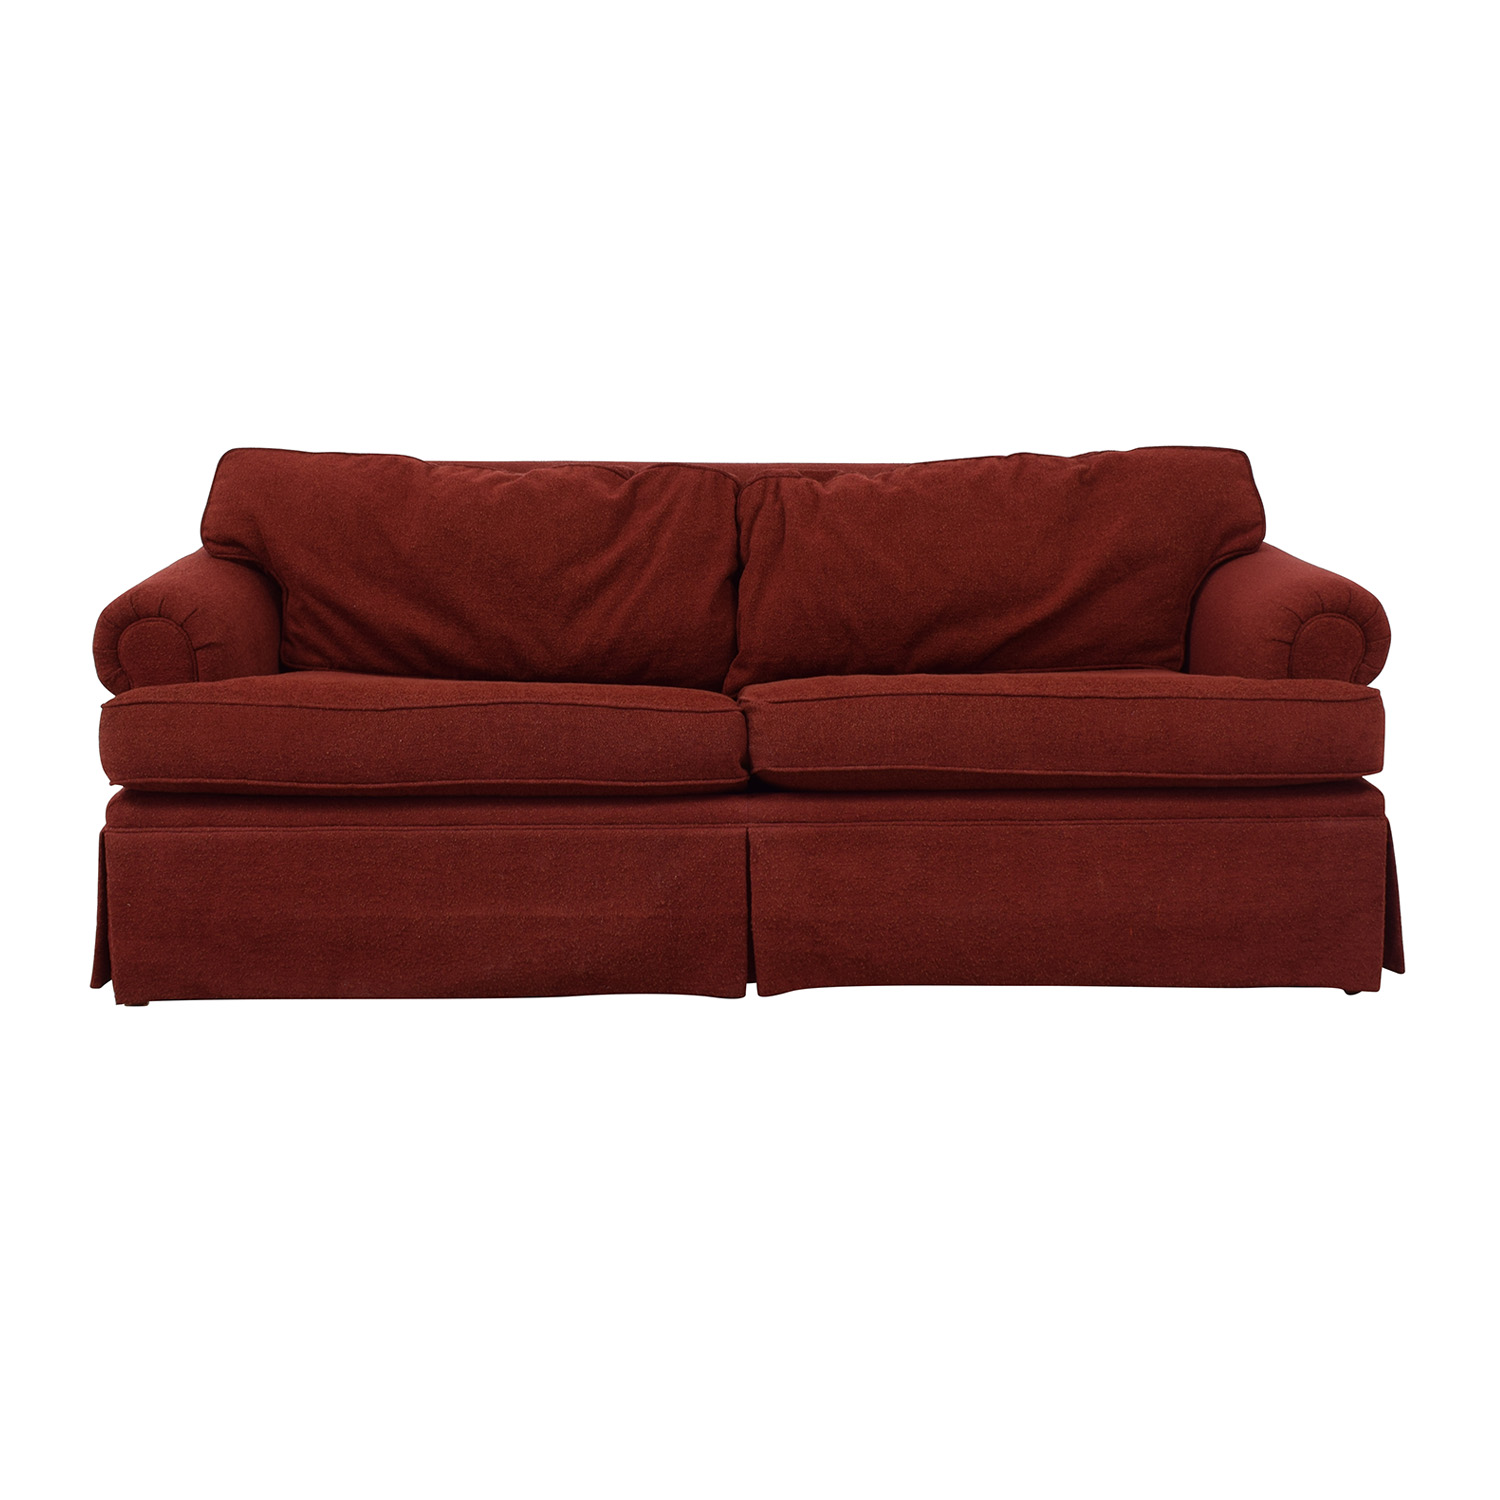 buy Baker Furniture Milling Road Red Queen Pull Out Sofa Baker Furniture